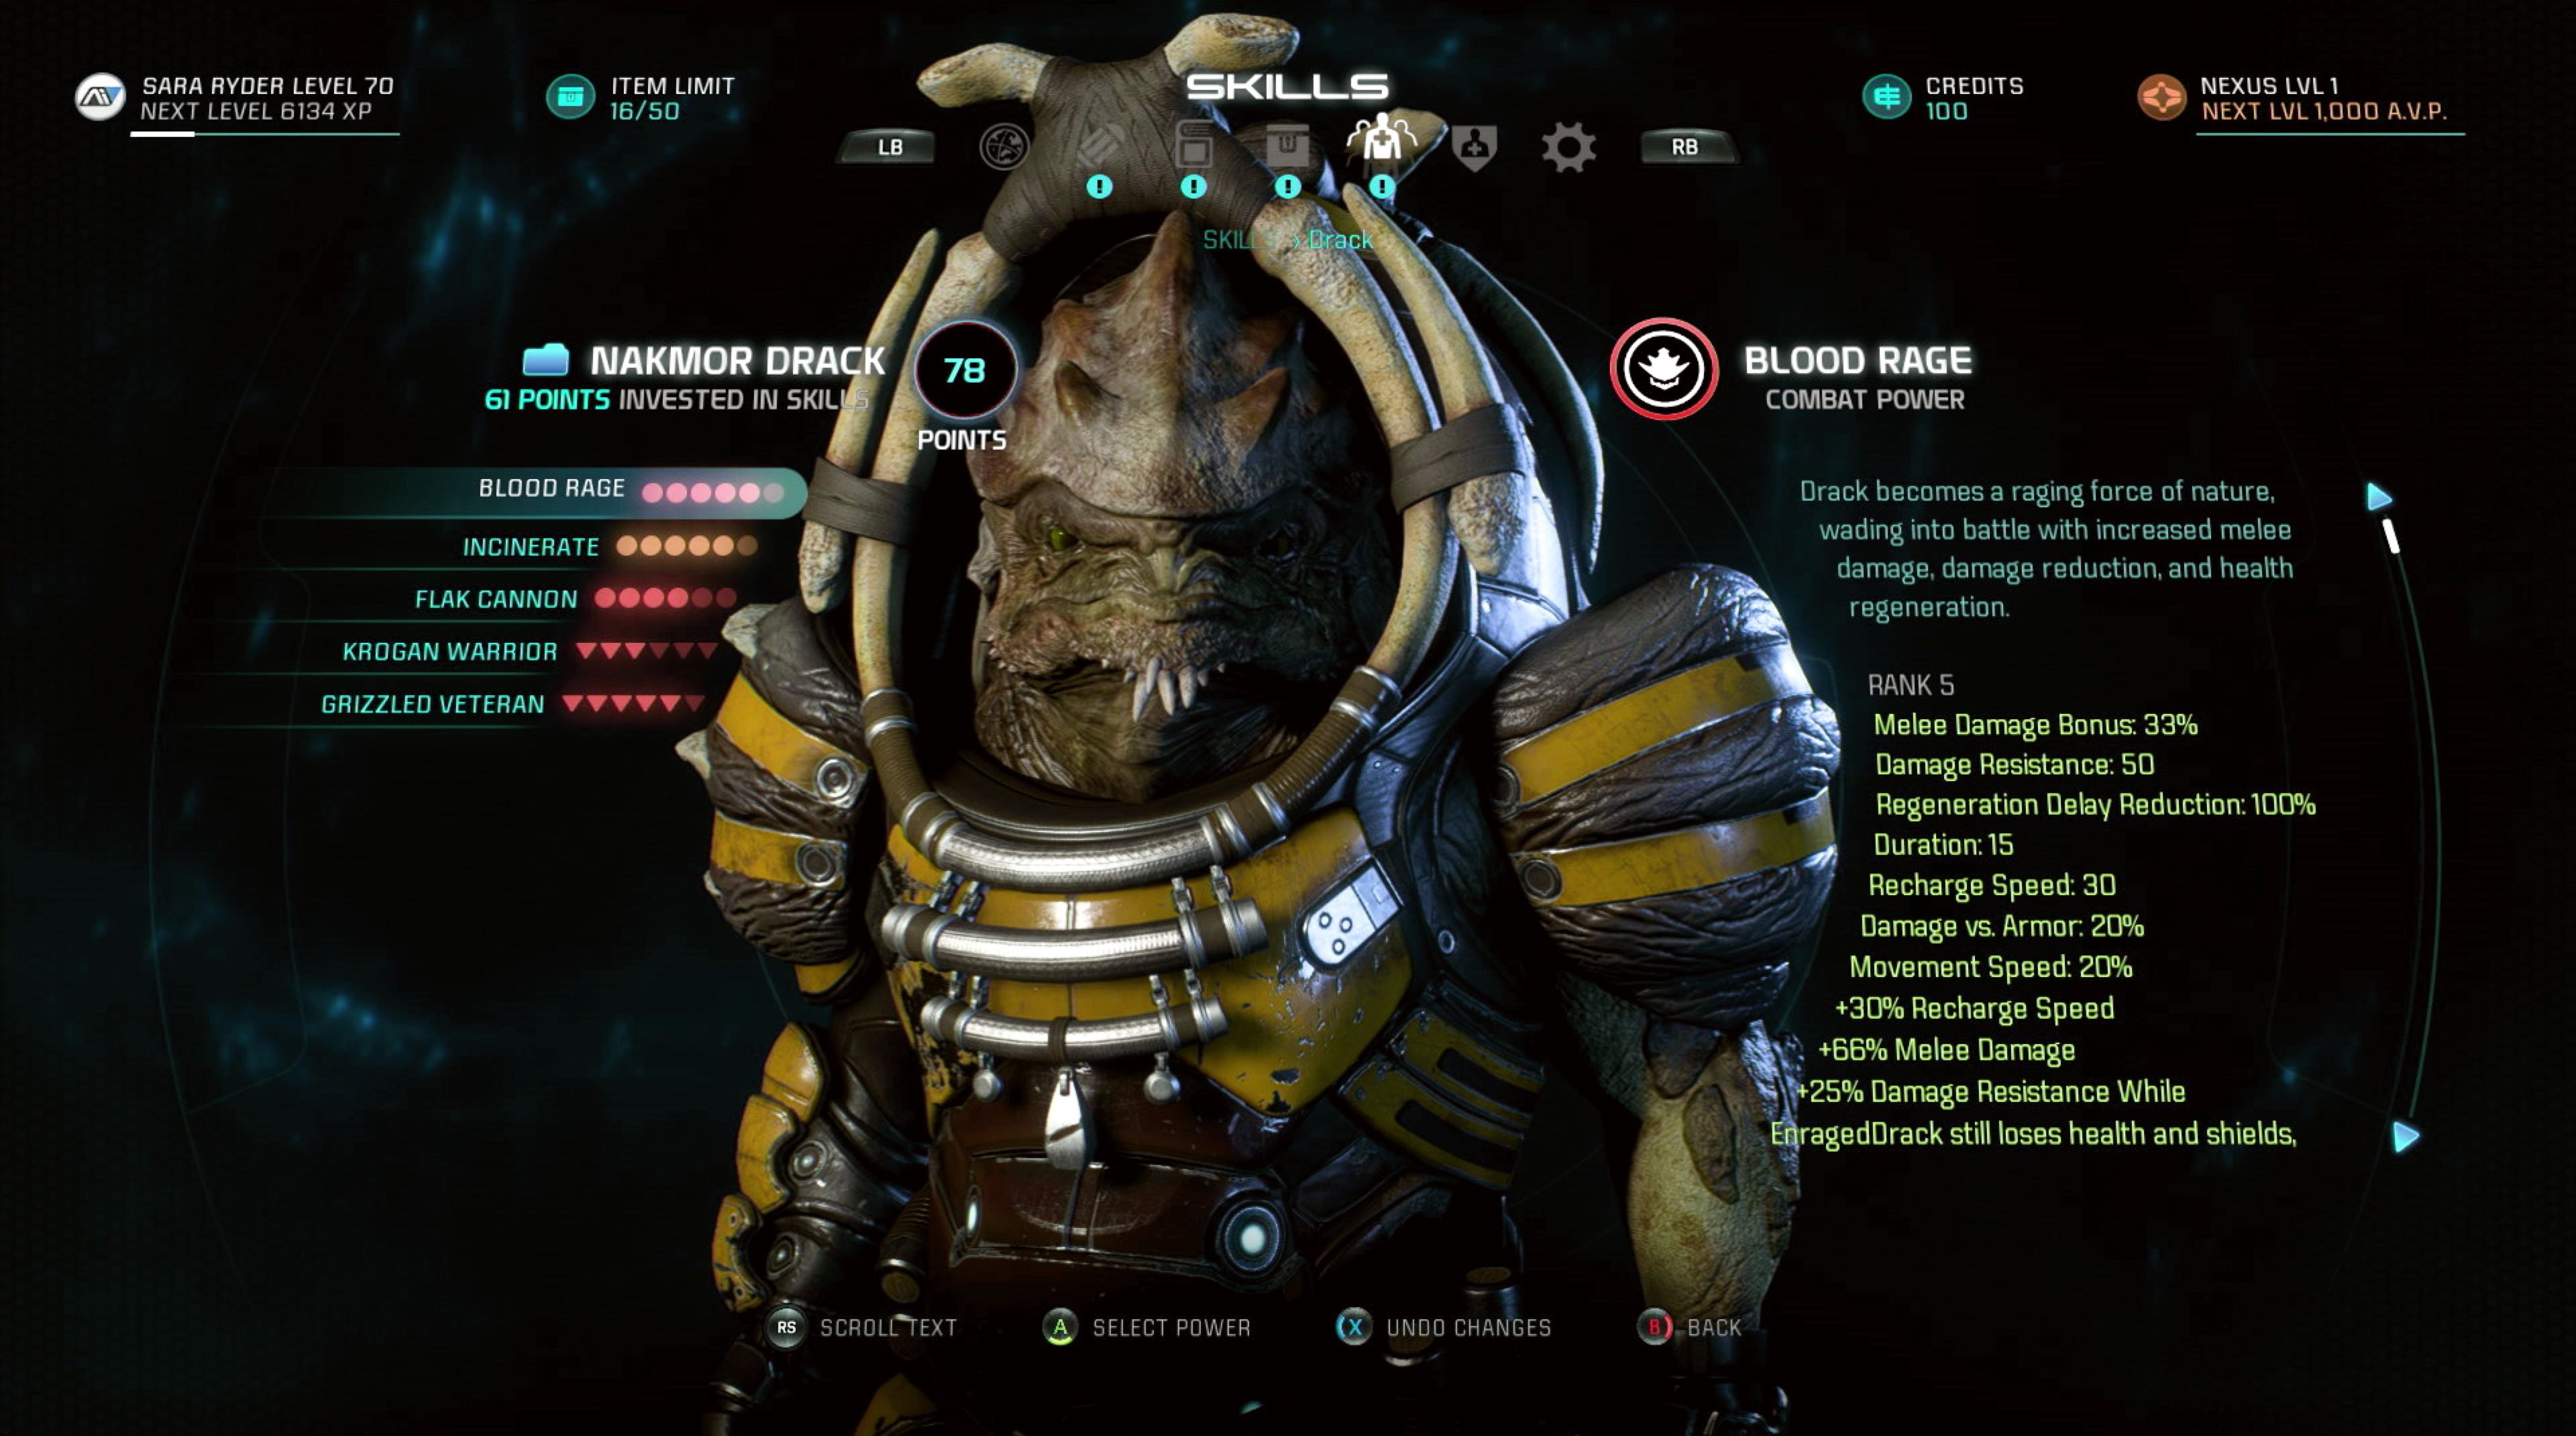 Mass Effect Andromeda Offers Plenty Of Gameplay Depth Despite Some Game Ps4 Fans Wont Find The Instantaneous Character Touch Points Theyre Used To From Existing Series